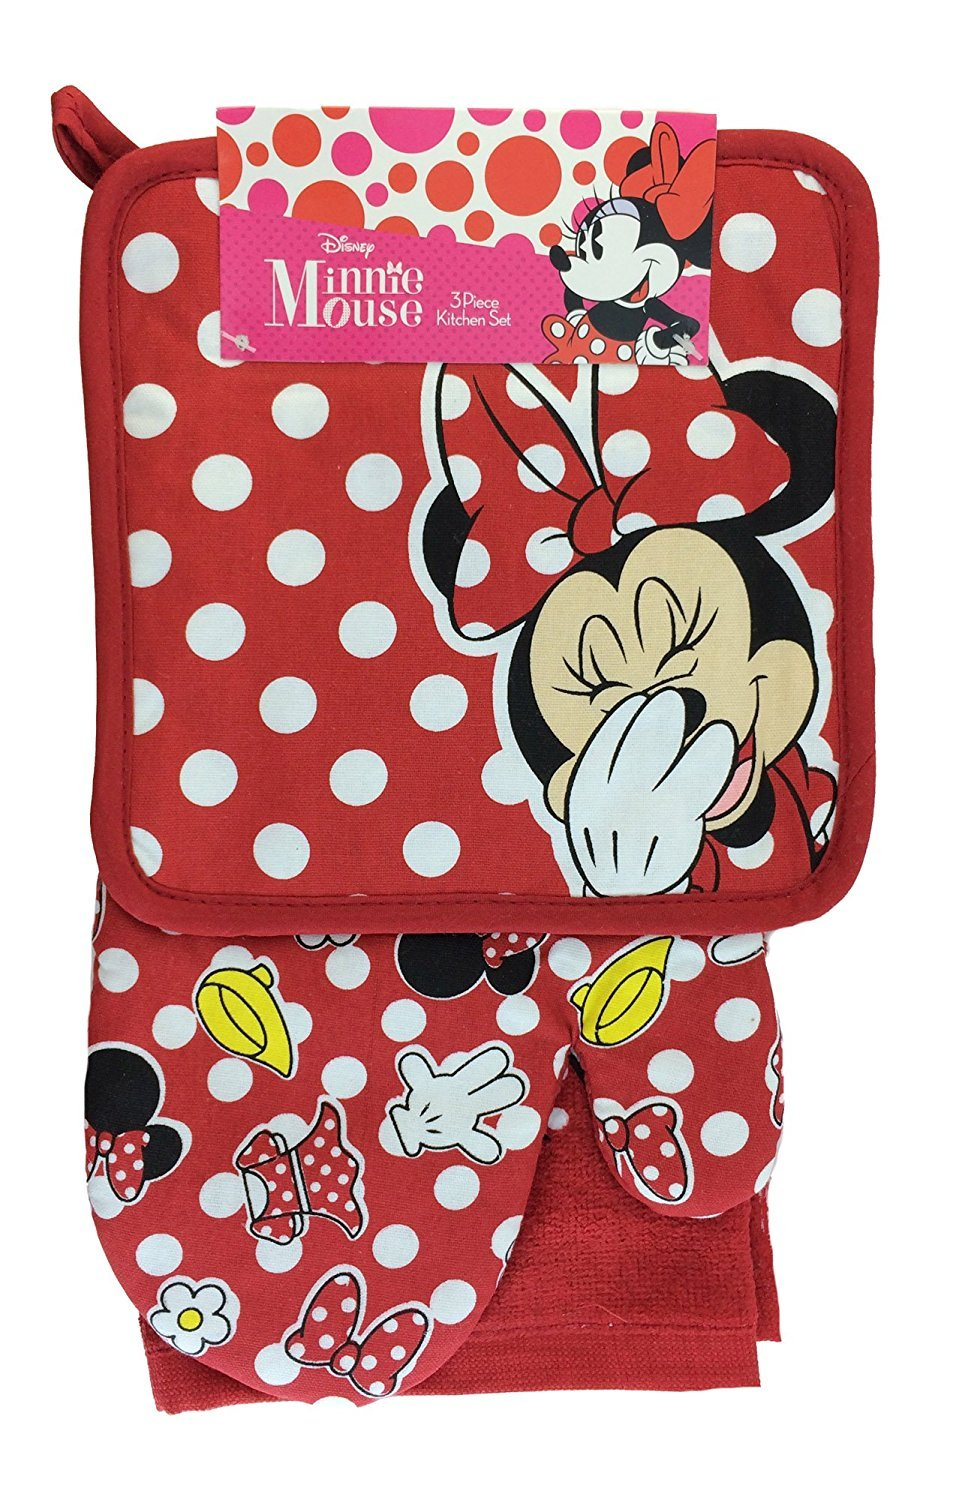 Disney Minnie Teile Minnie Mouse 3 Stück Küche Set: Amazon.de: Küche ...